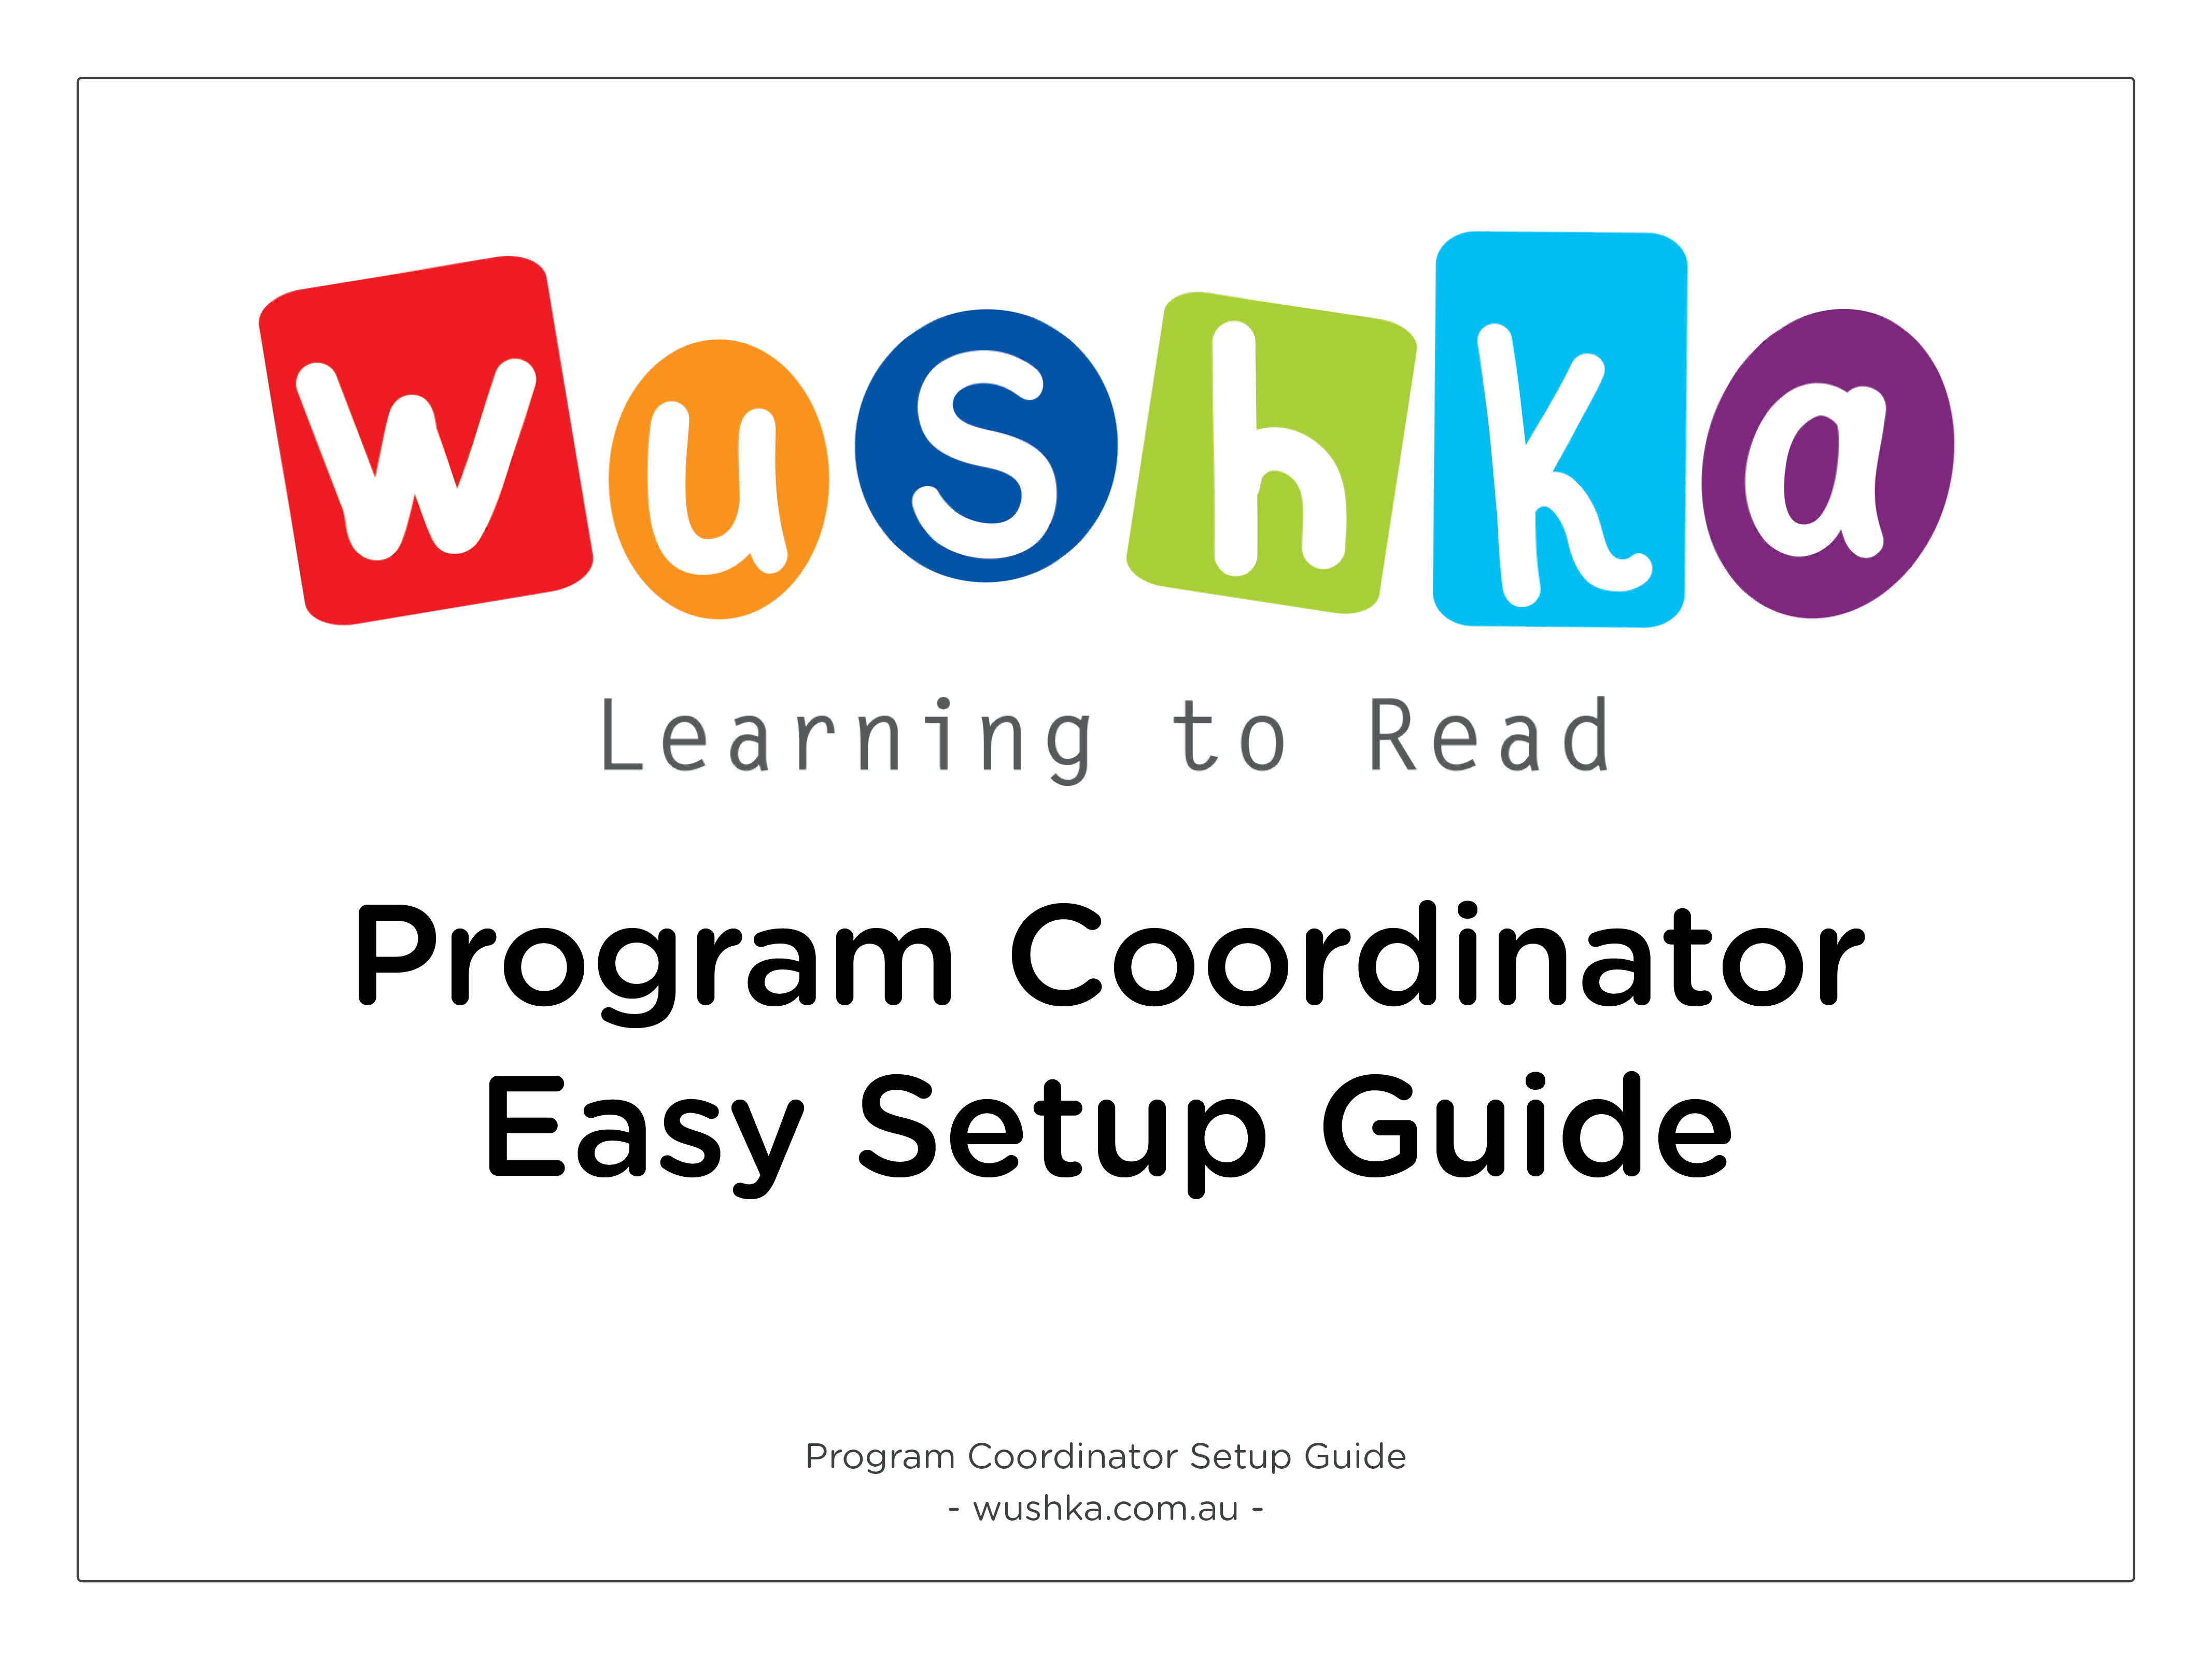 Program Coordinator Setup Guide